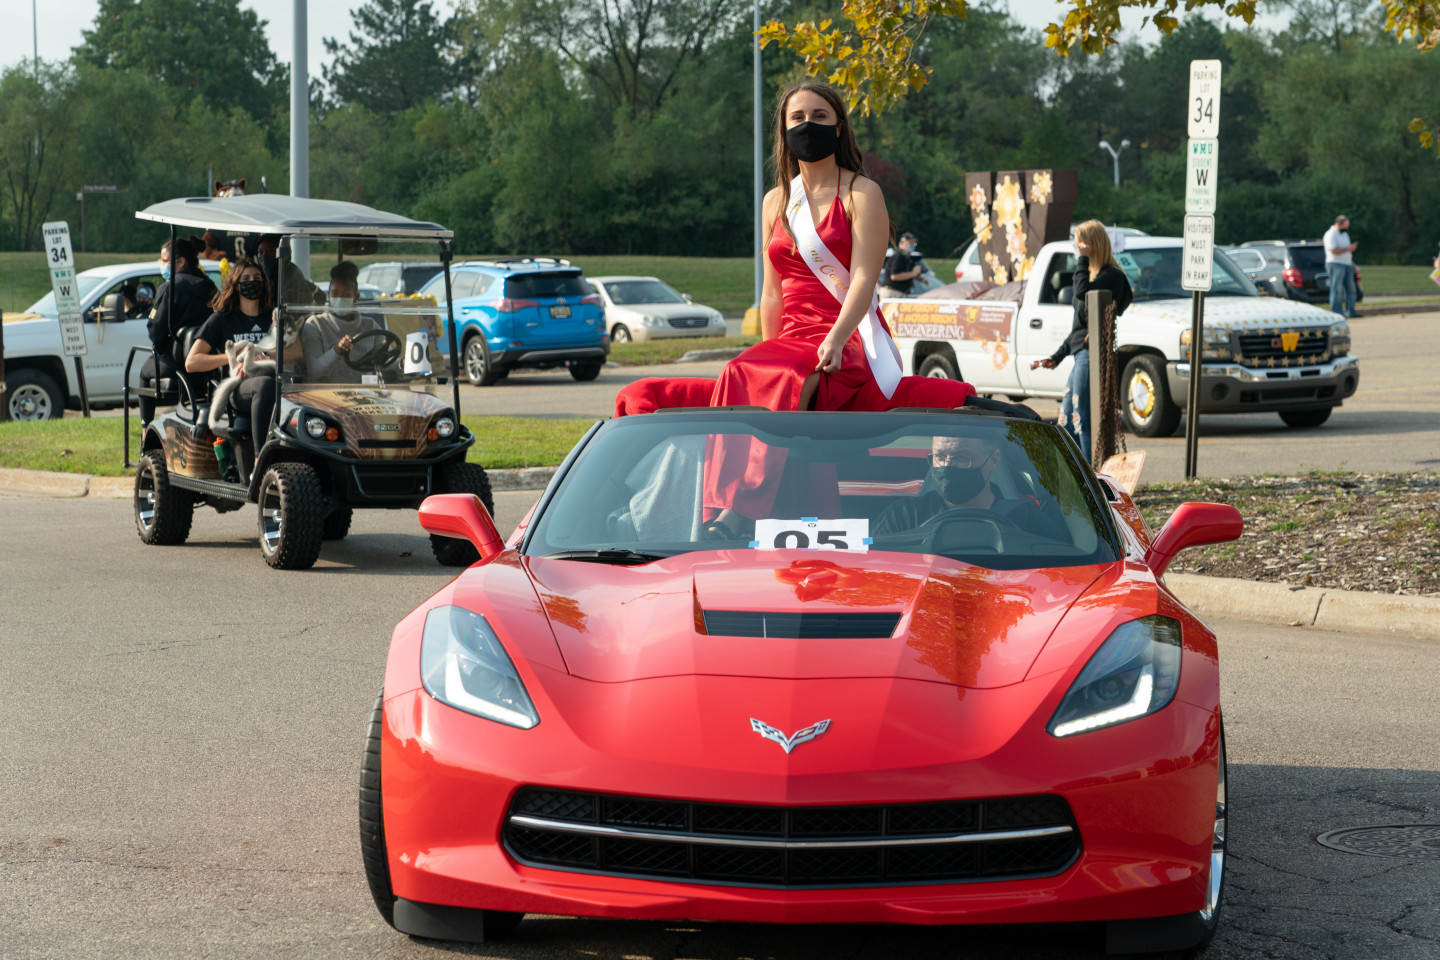 A member of the Homecoming Court rides in a convertible.